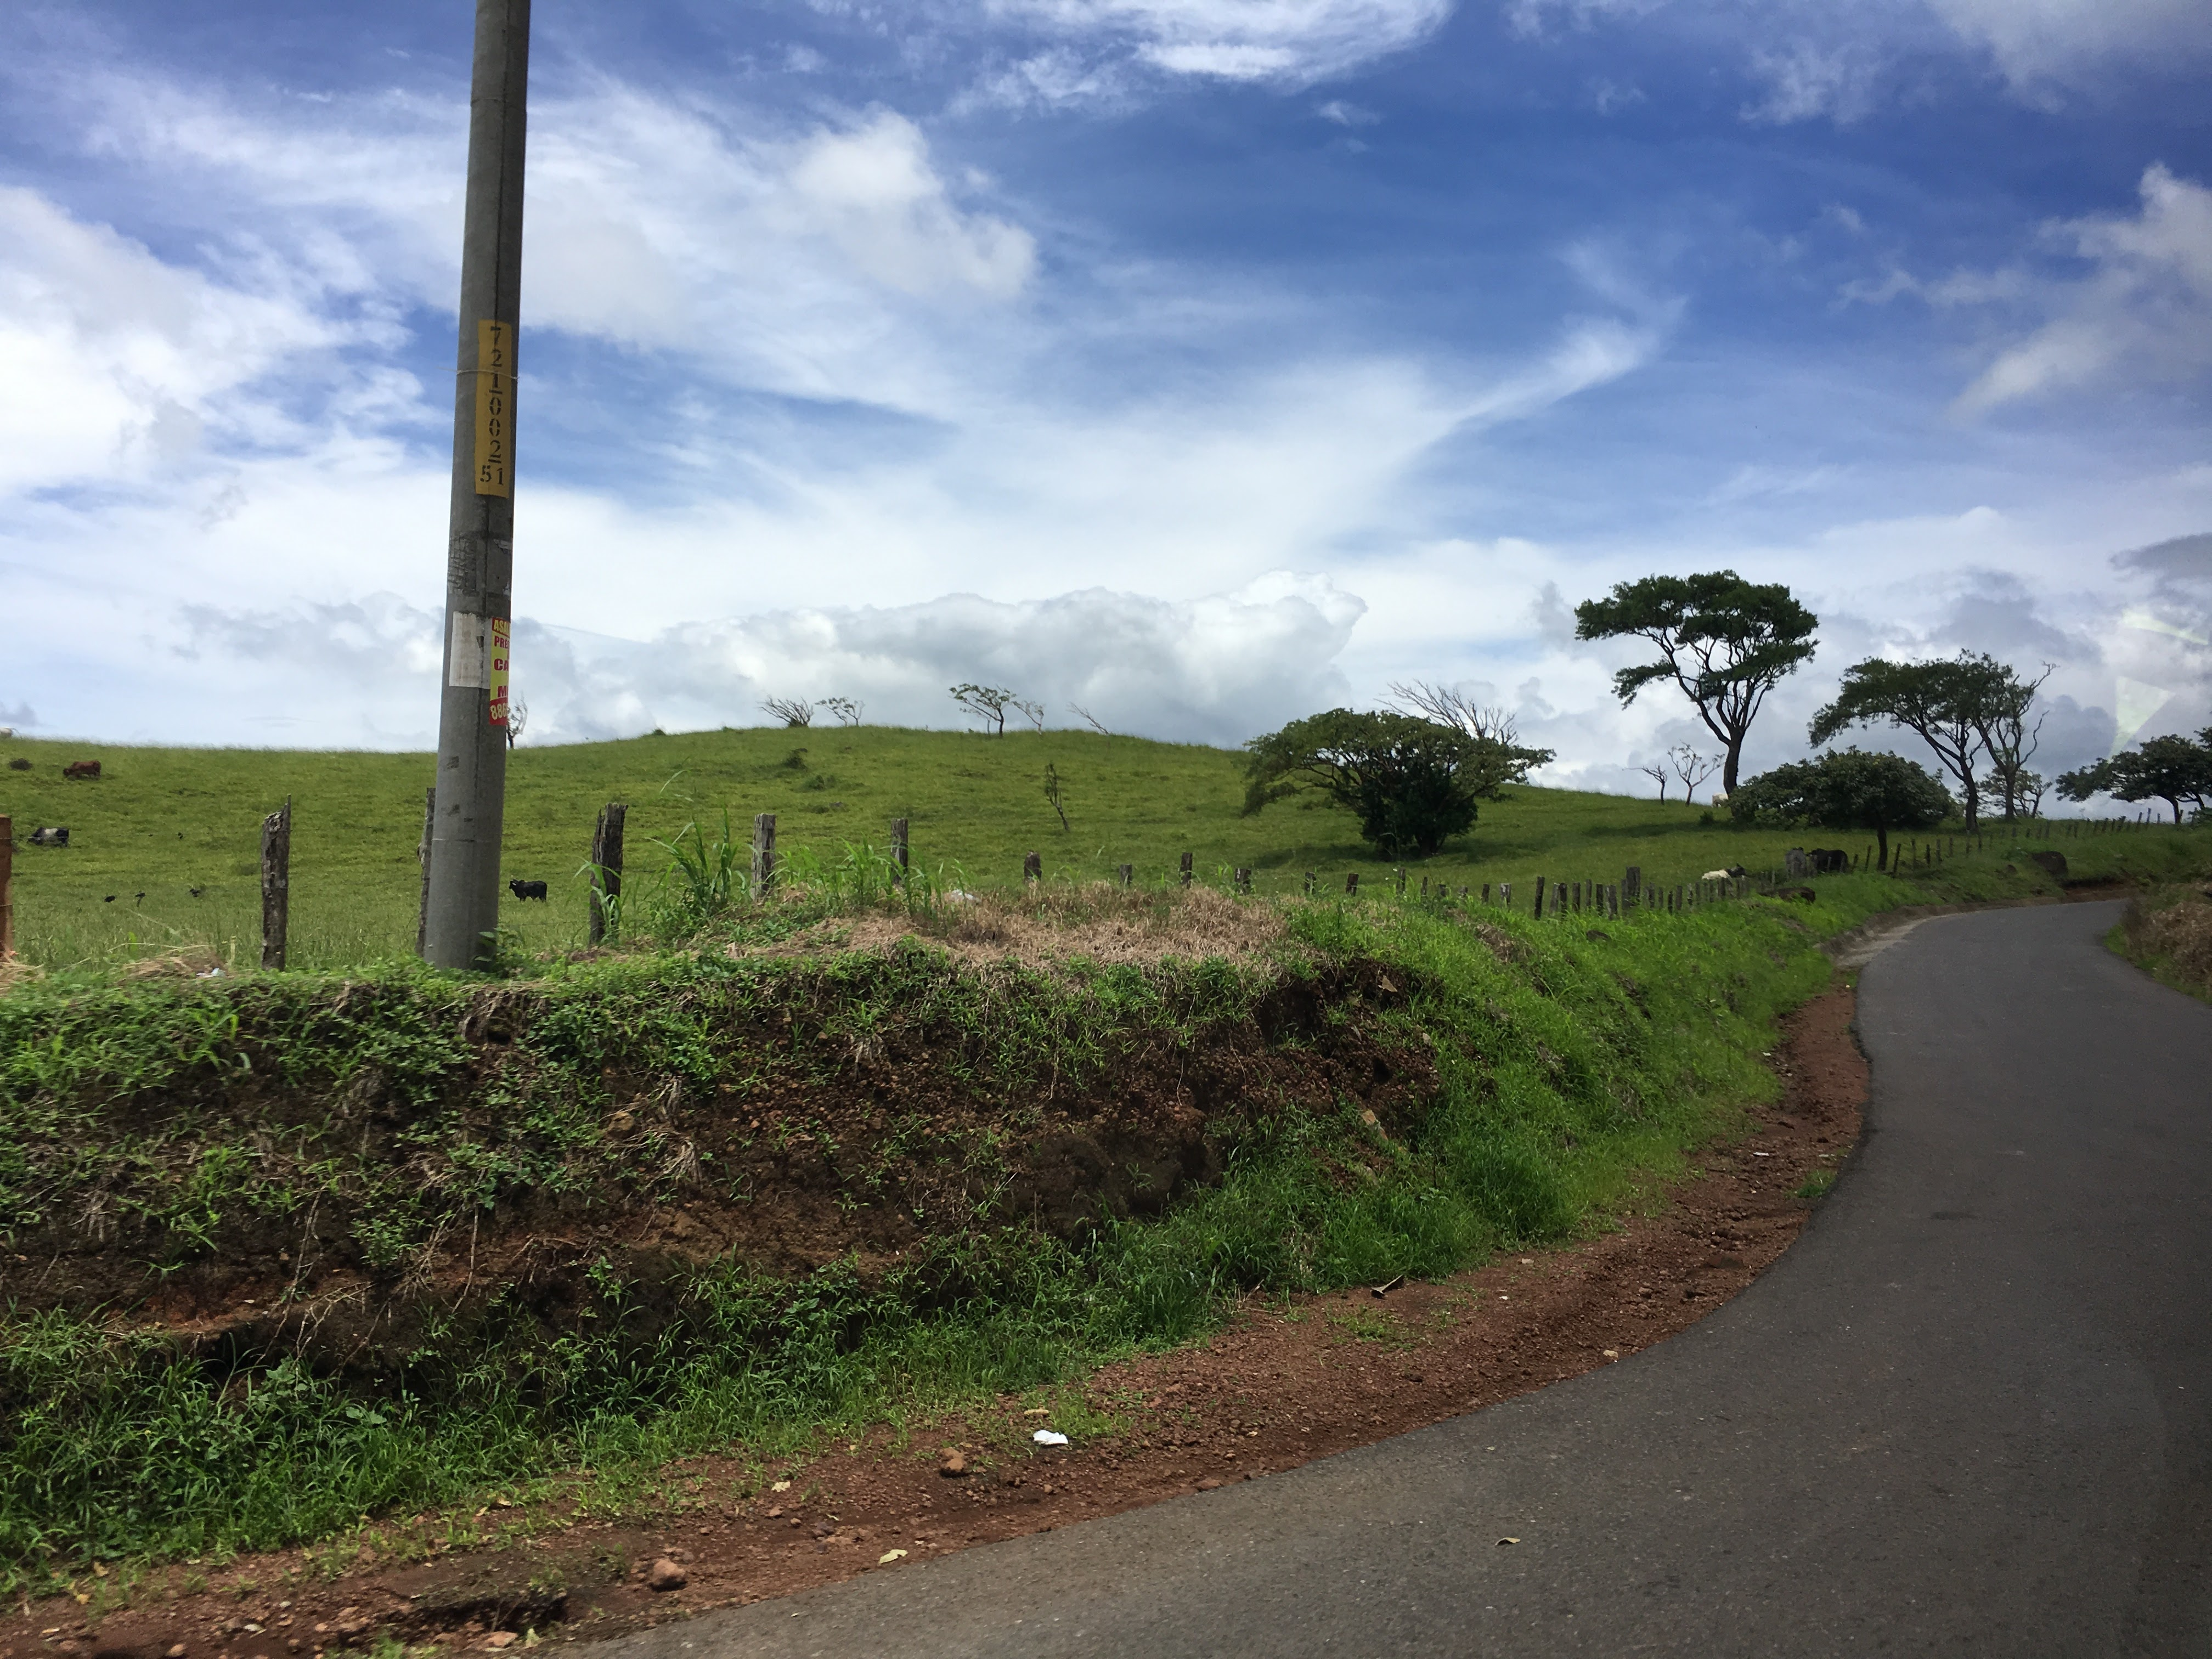 Tipico Costa Rican pastures and winding roads